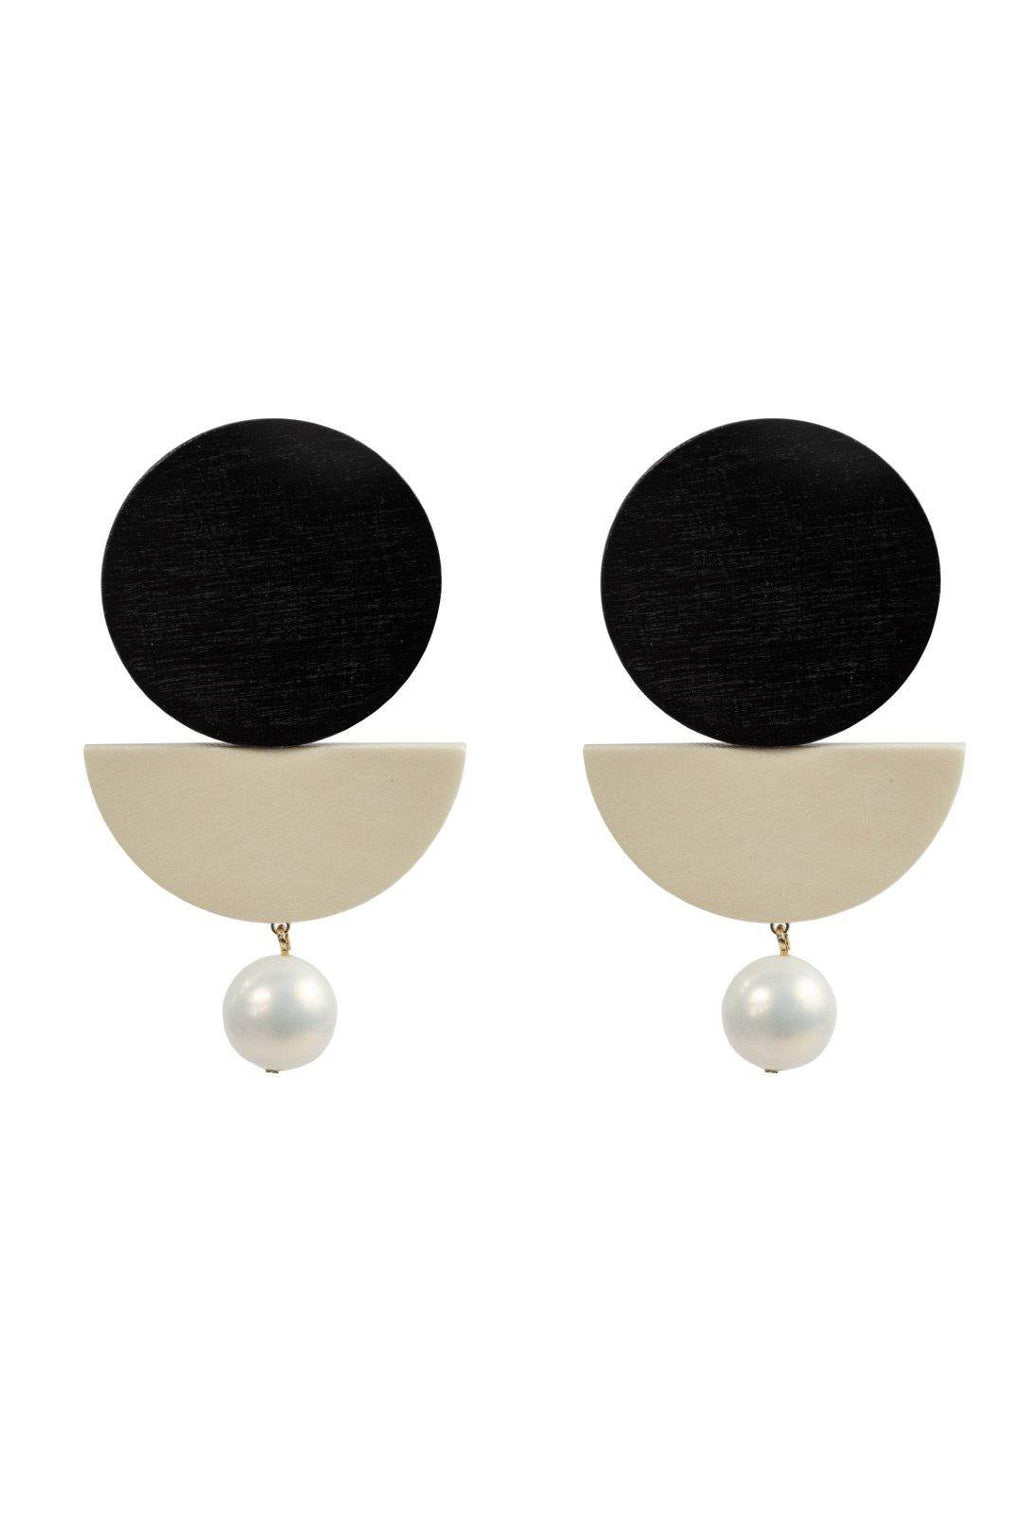 FOUR CORNERS Madrid Earrings - Black - FOUR CORNERS JEWELLERY - [product type] - Magpie Style